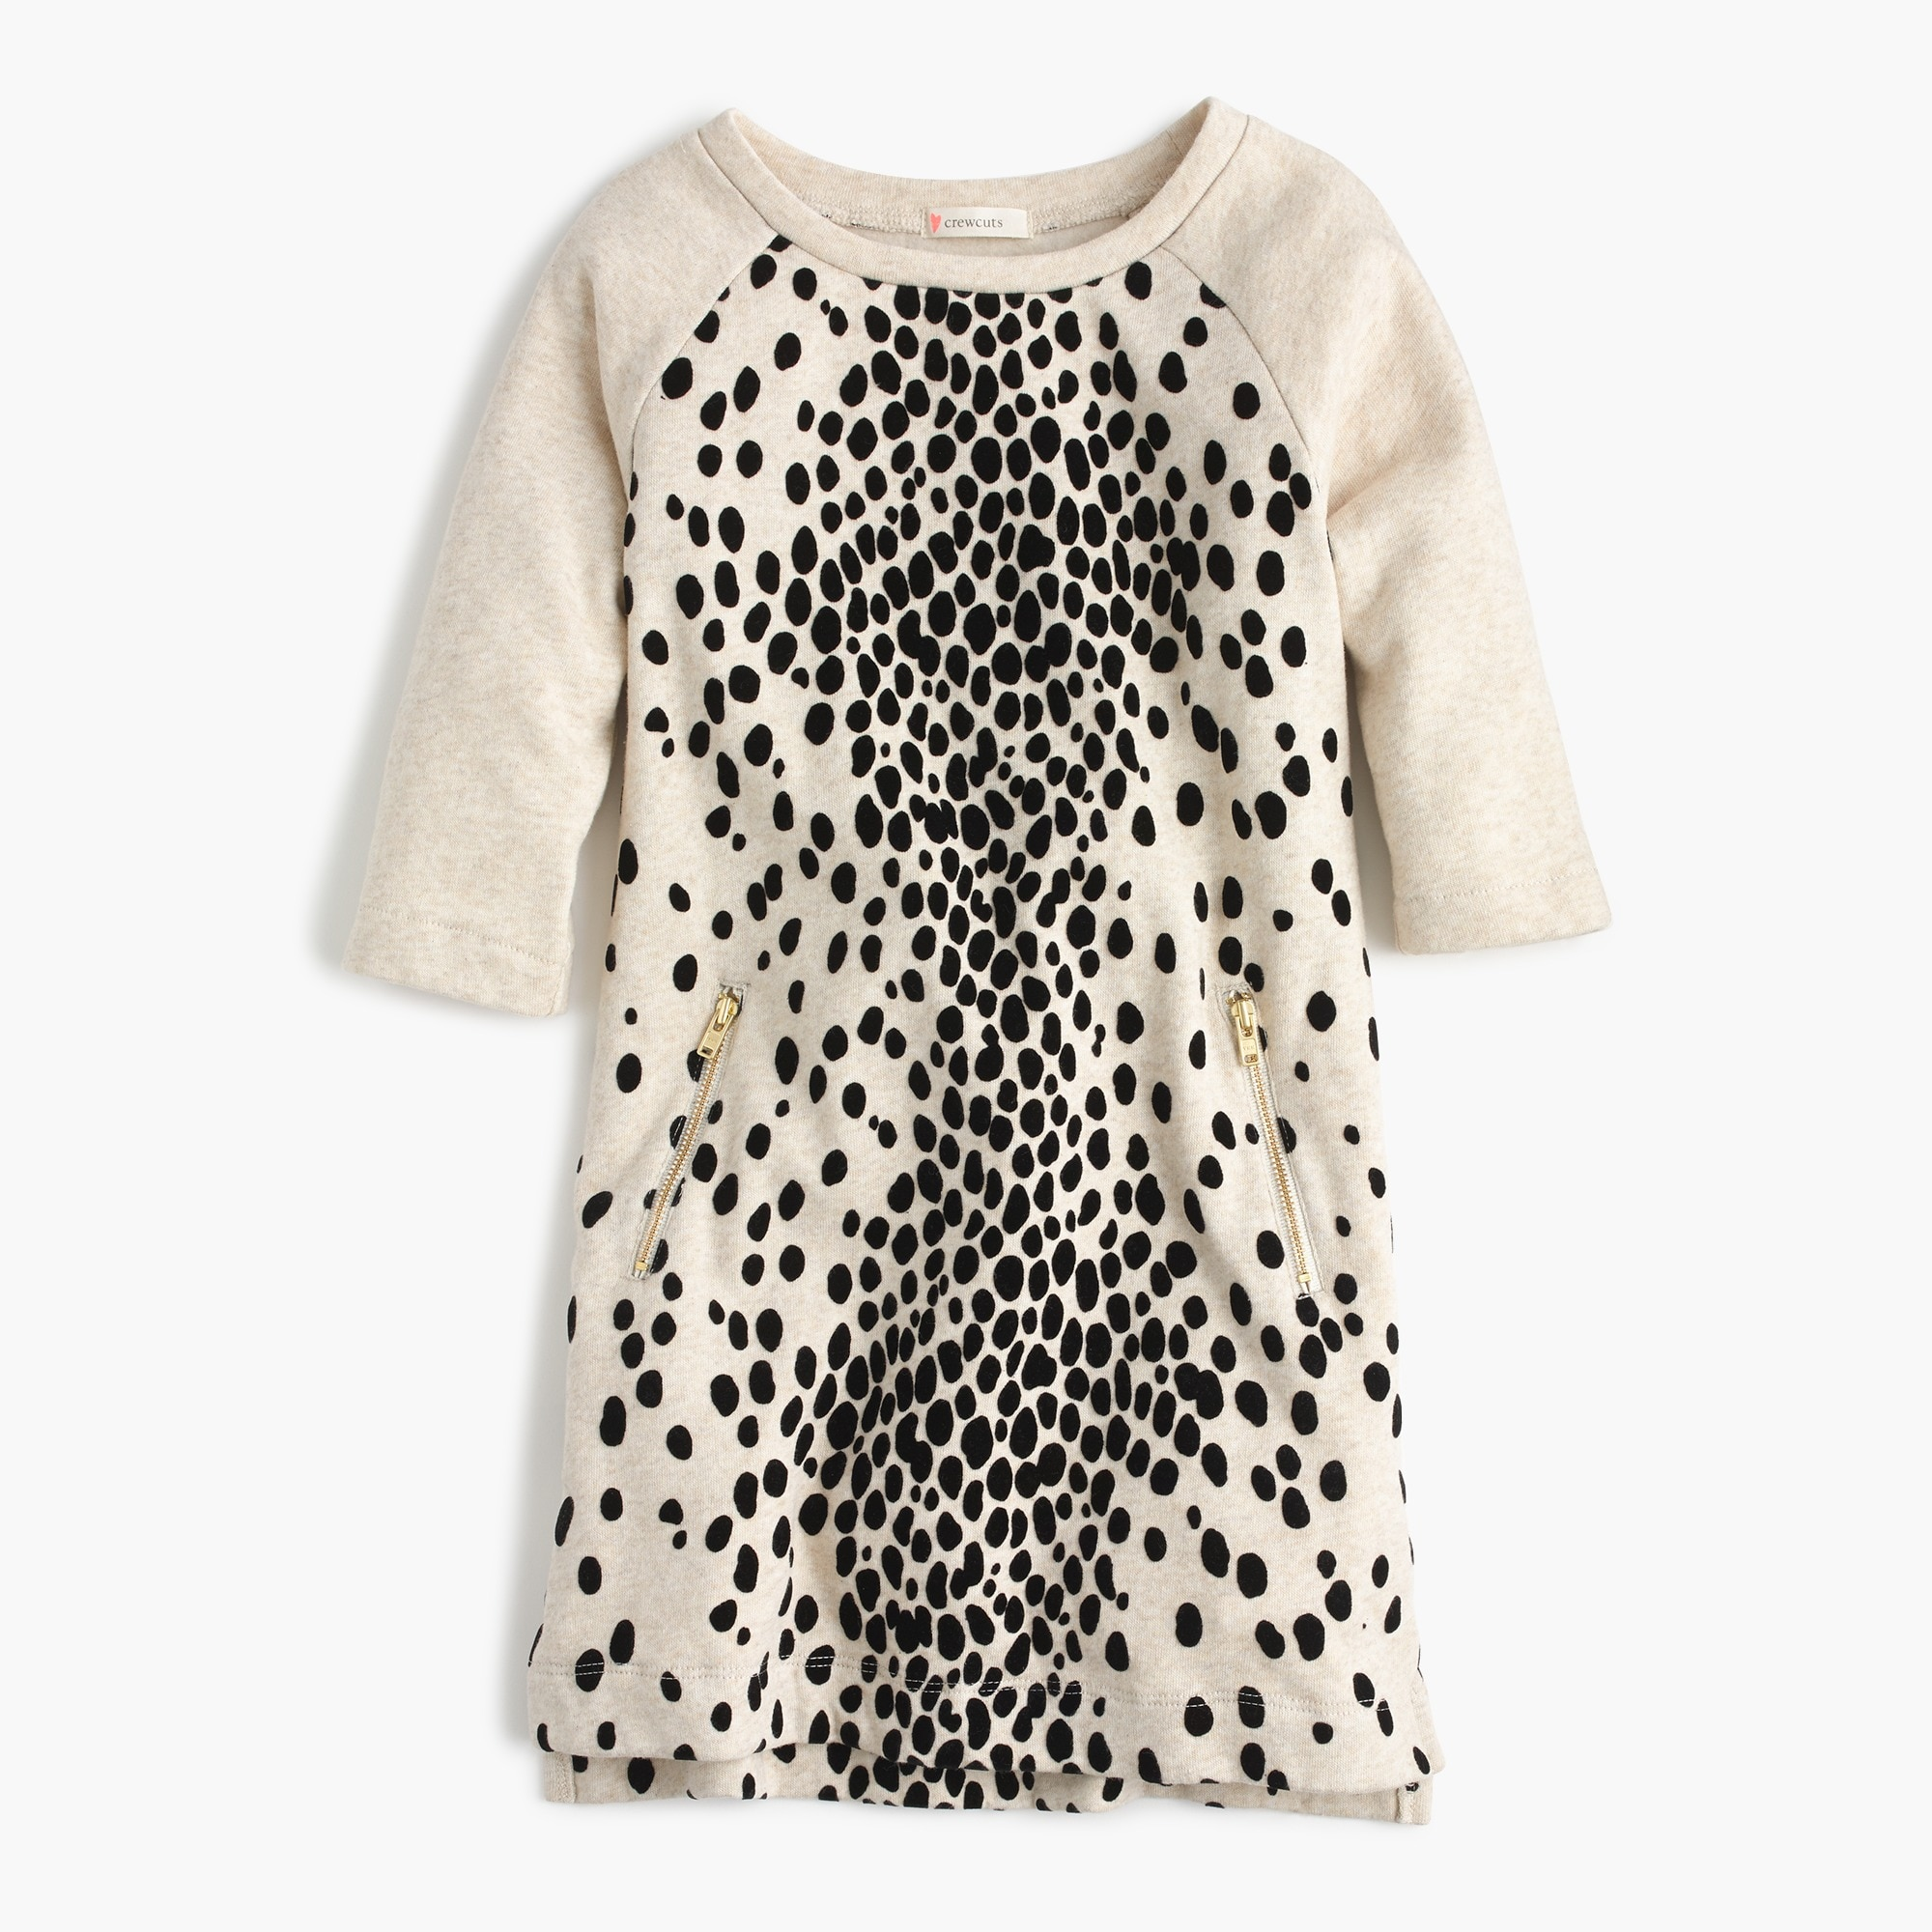 Girls' leopard-flocked sweatshirt-dress